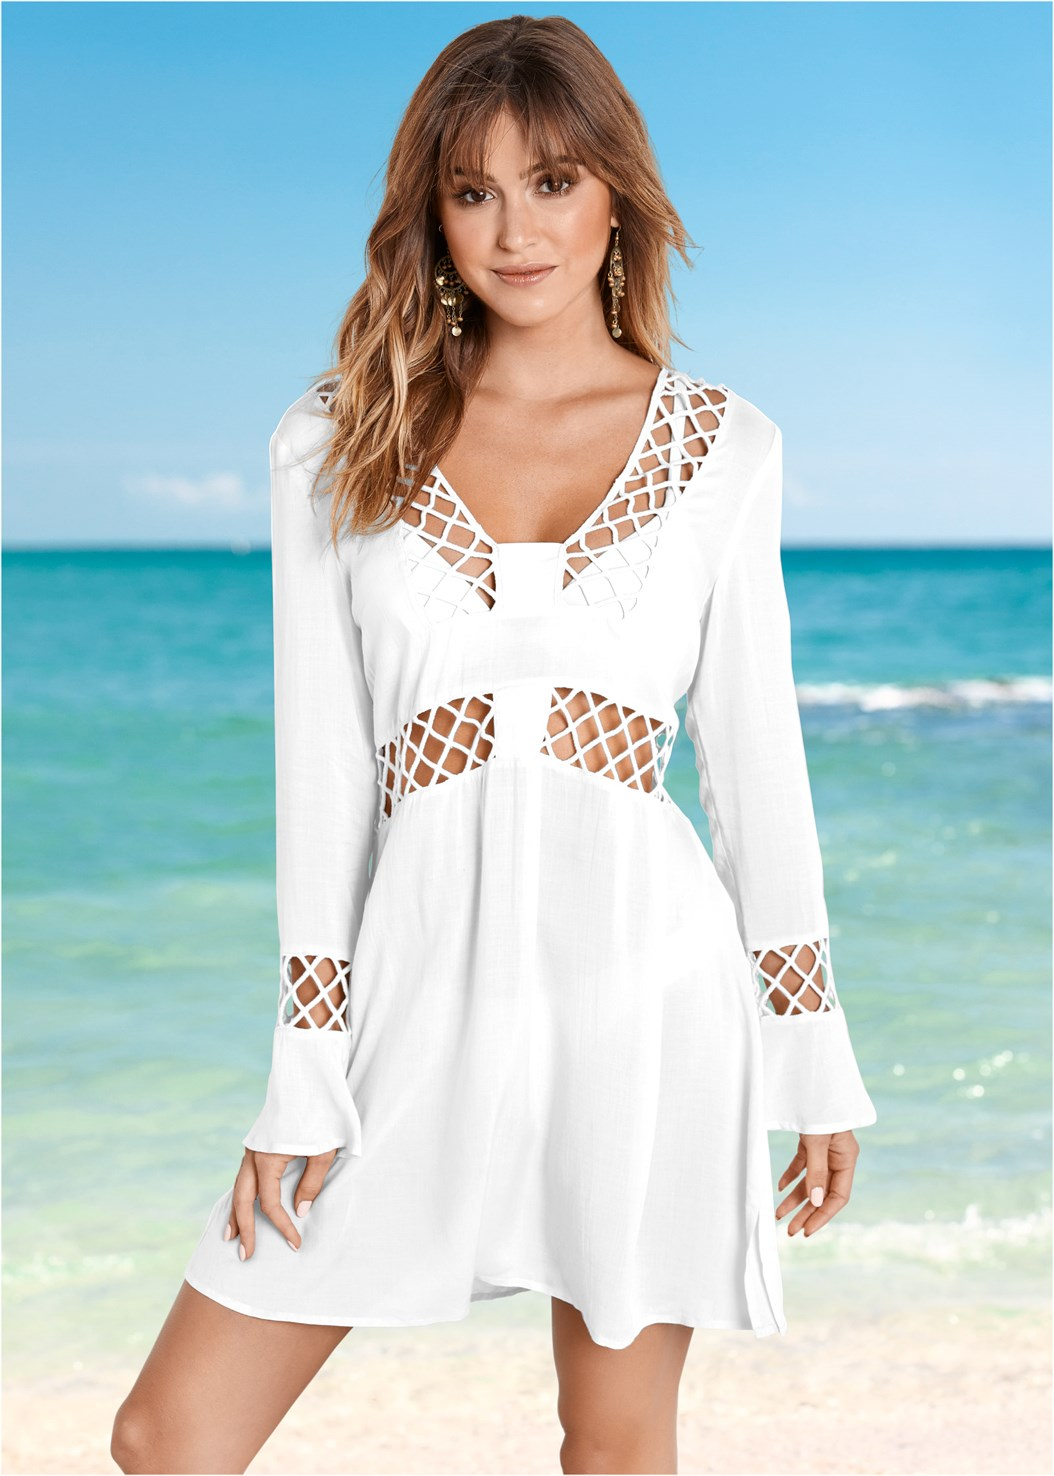 Caged Detail Cover-Up,Scoop Front Bikini Bottom